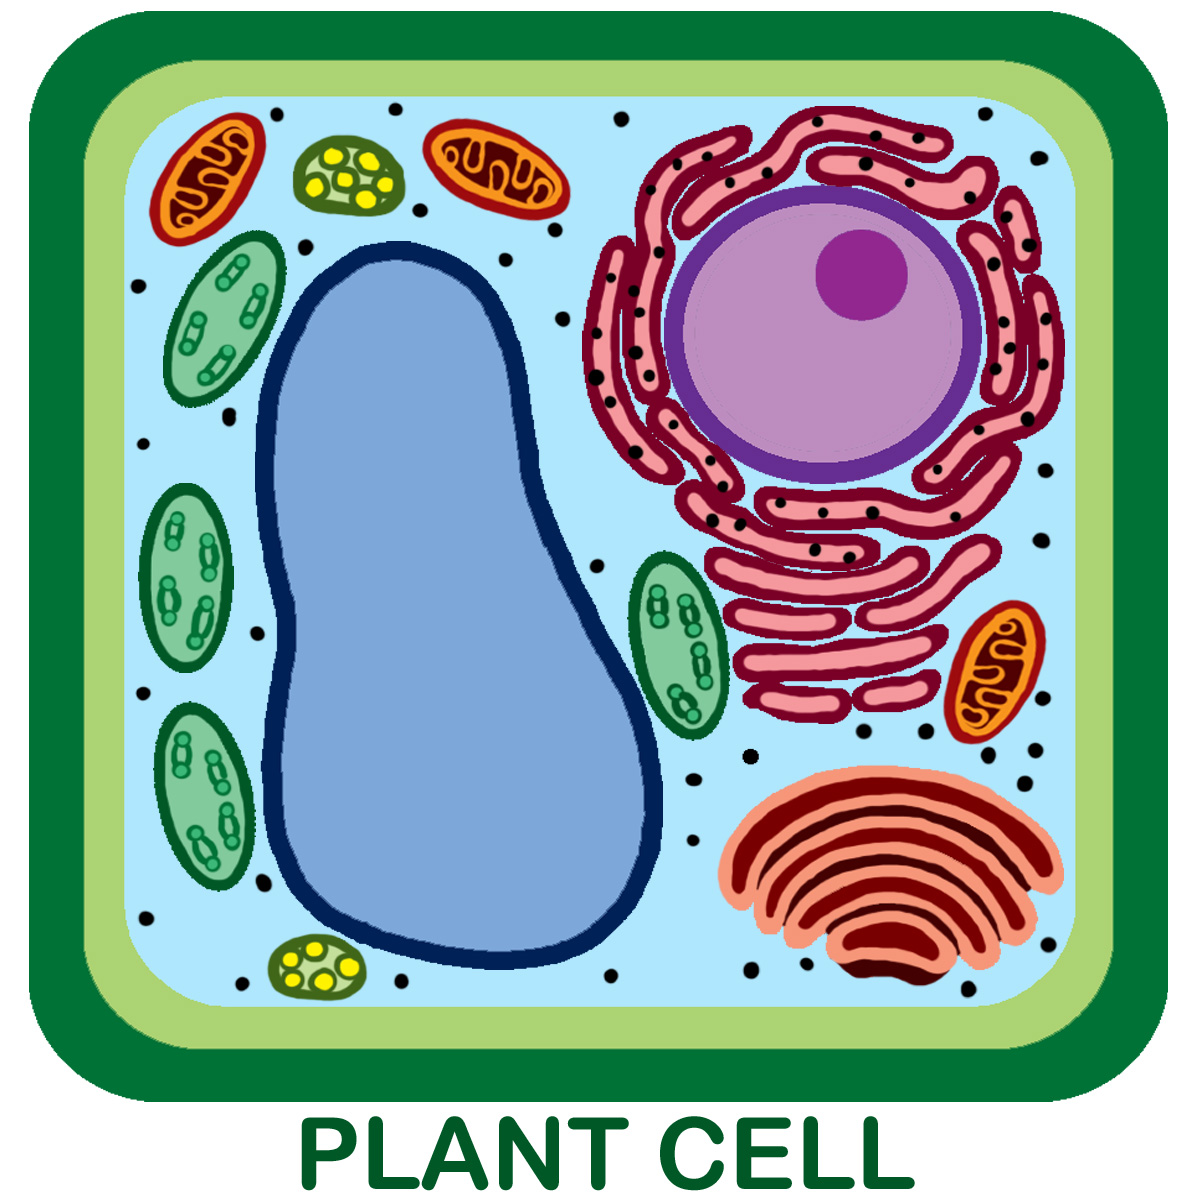 Biology Plant Cell Diagram Labeled Detailed Structure Bibliographies Cite This 1200x1200